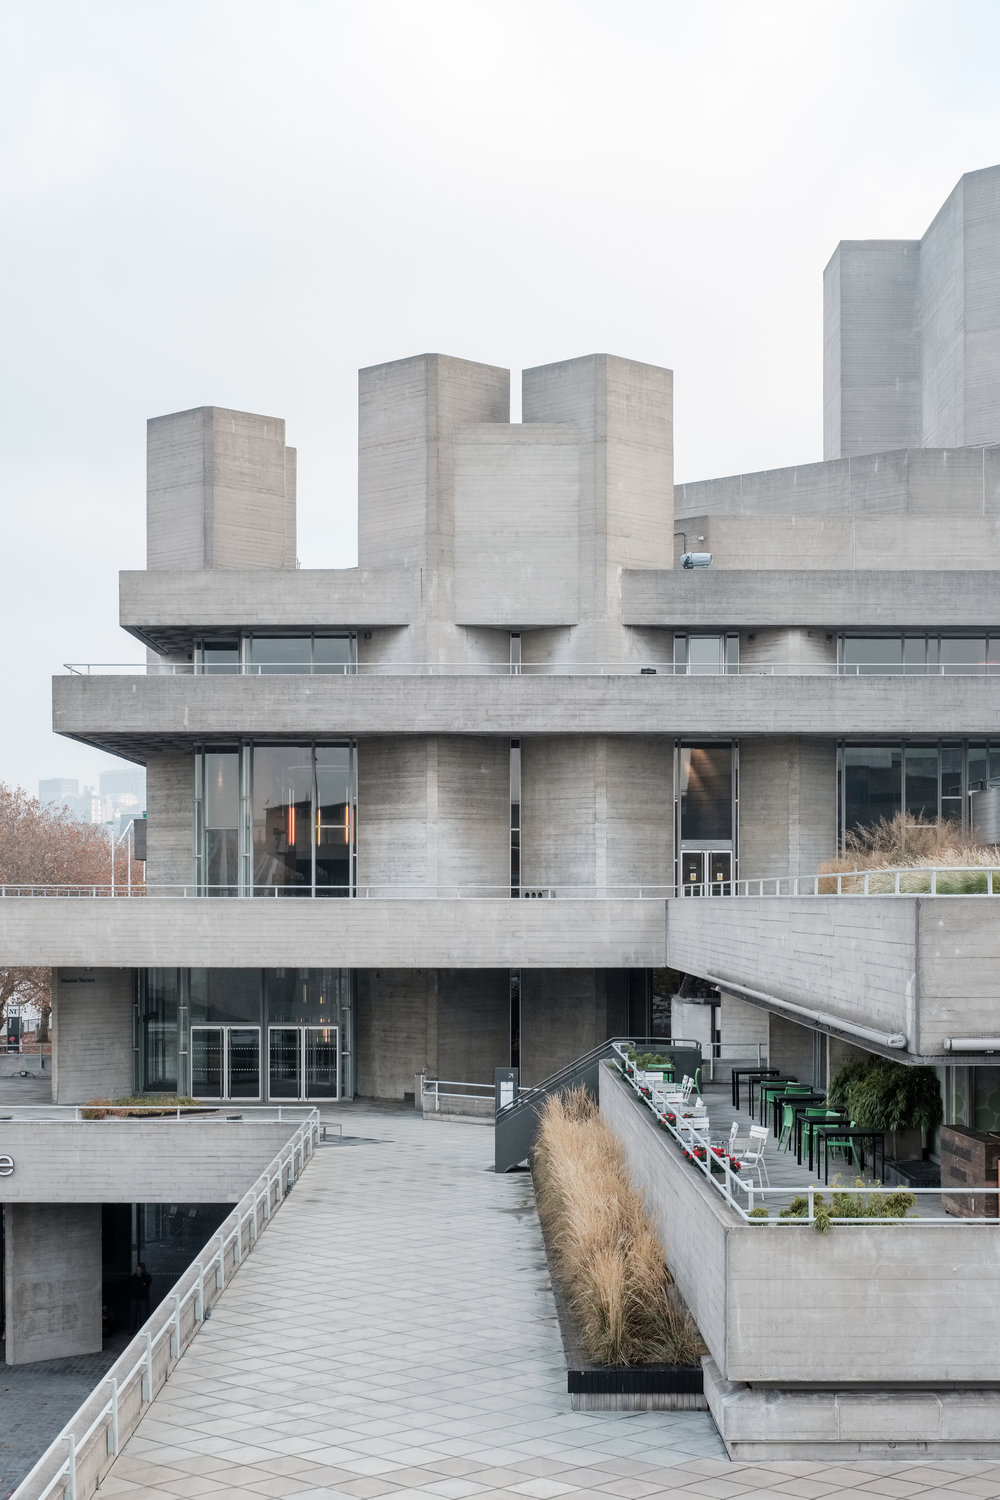 Fred+Howarth+Photography_National+Theater_01.jpg